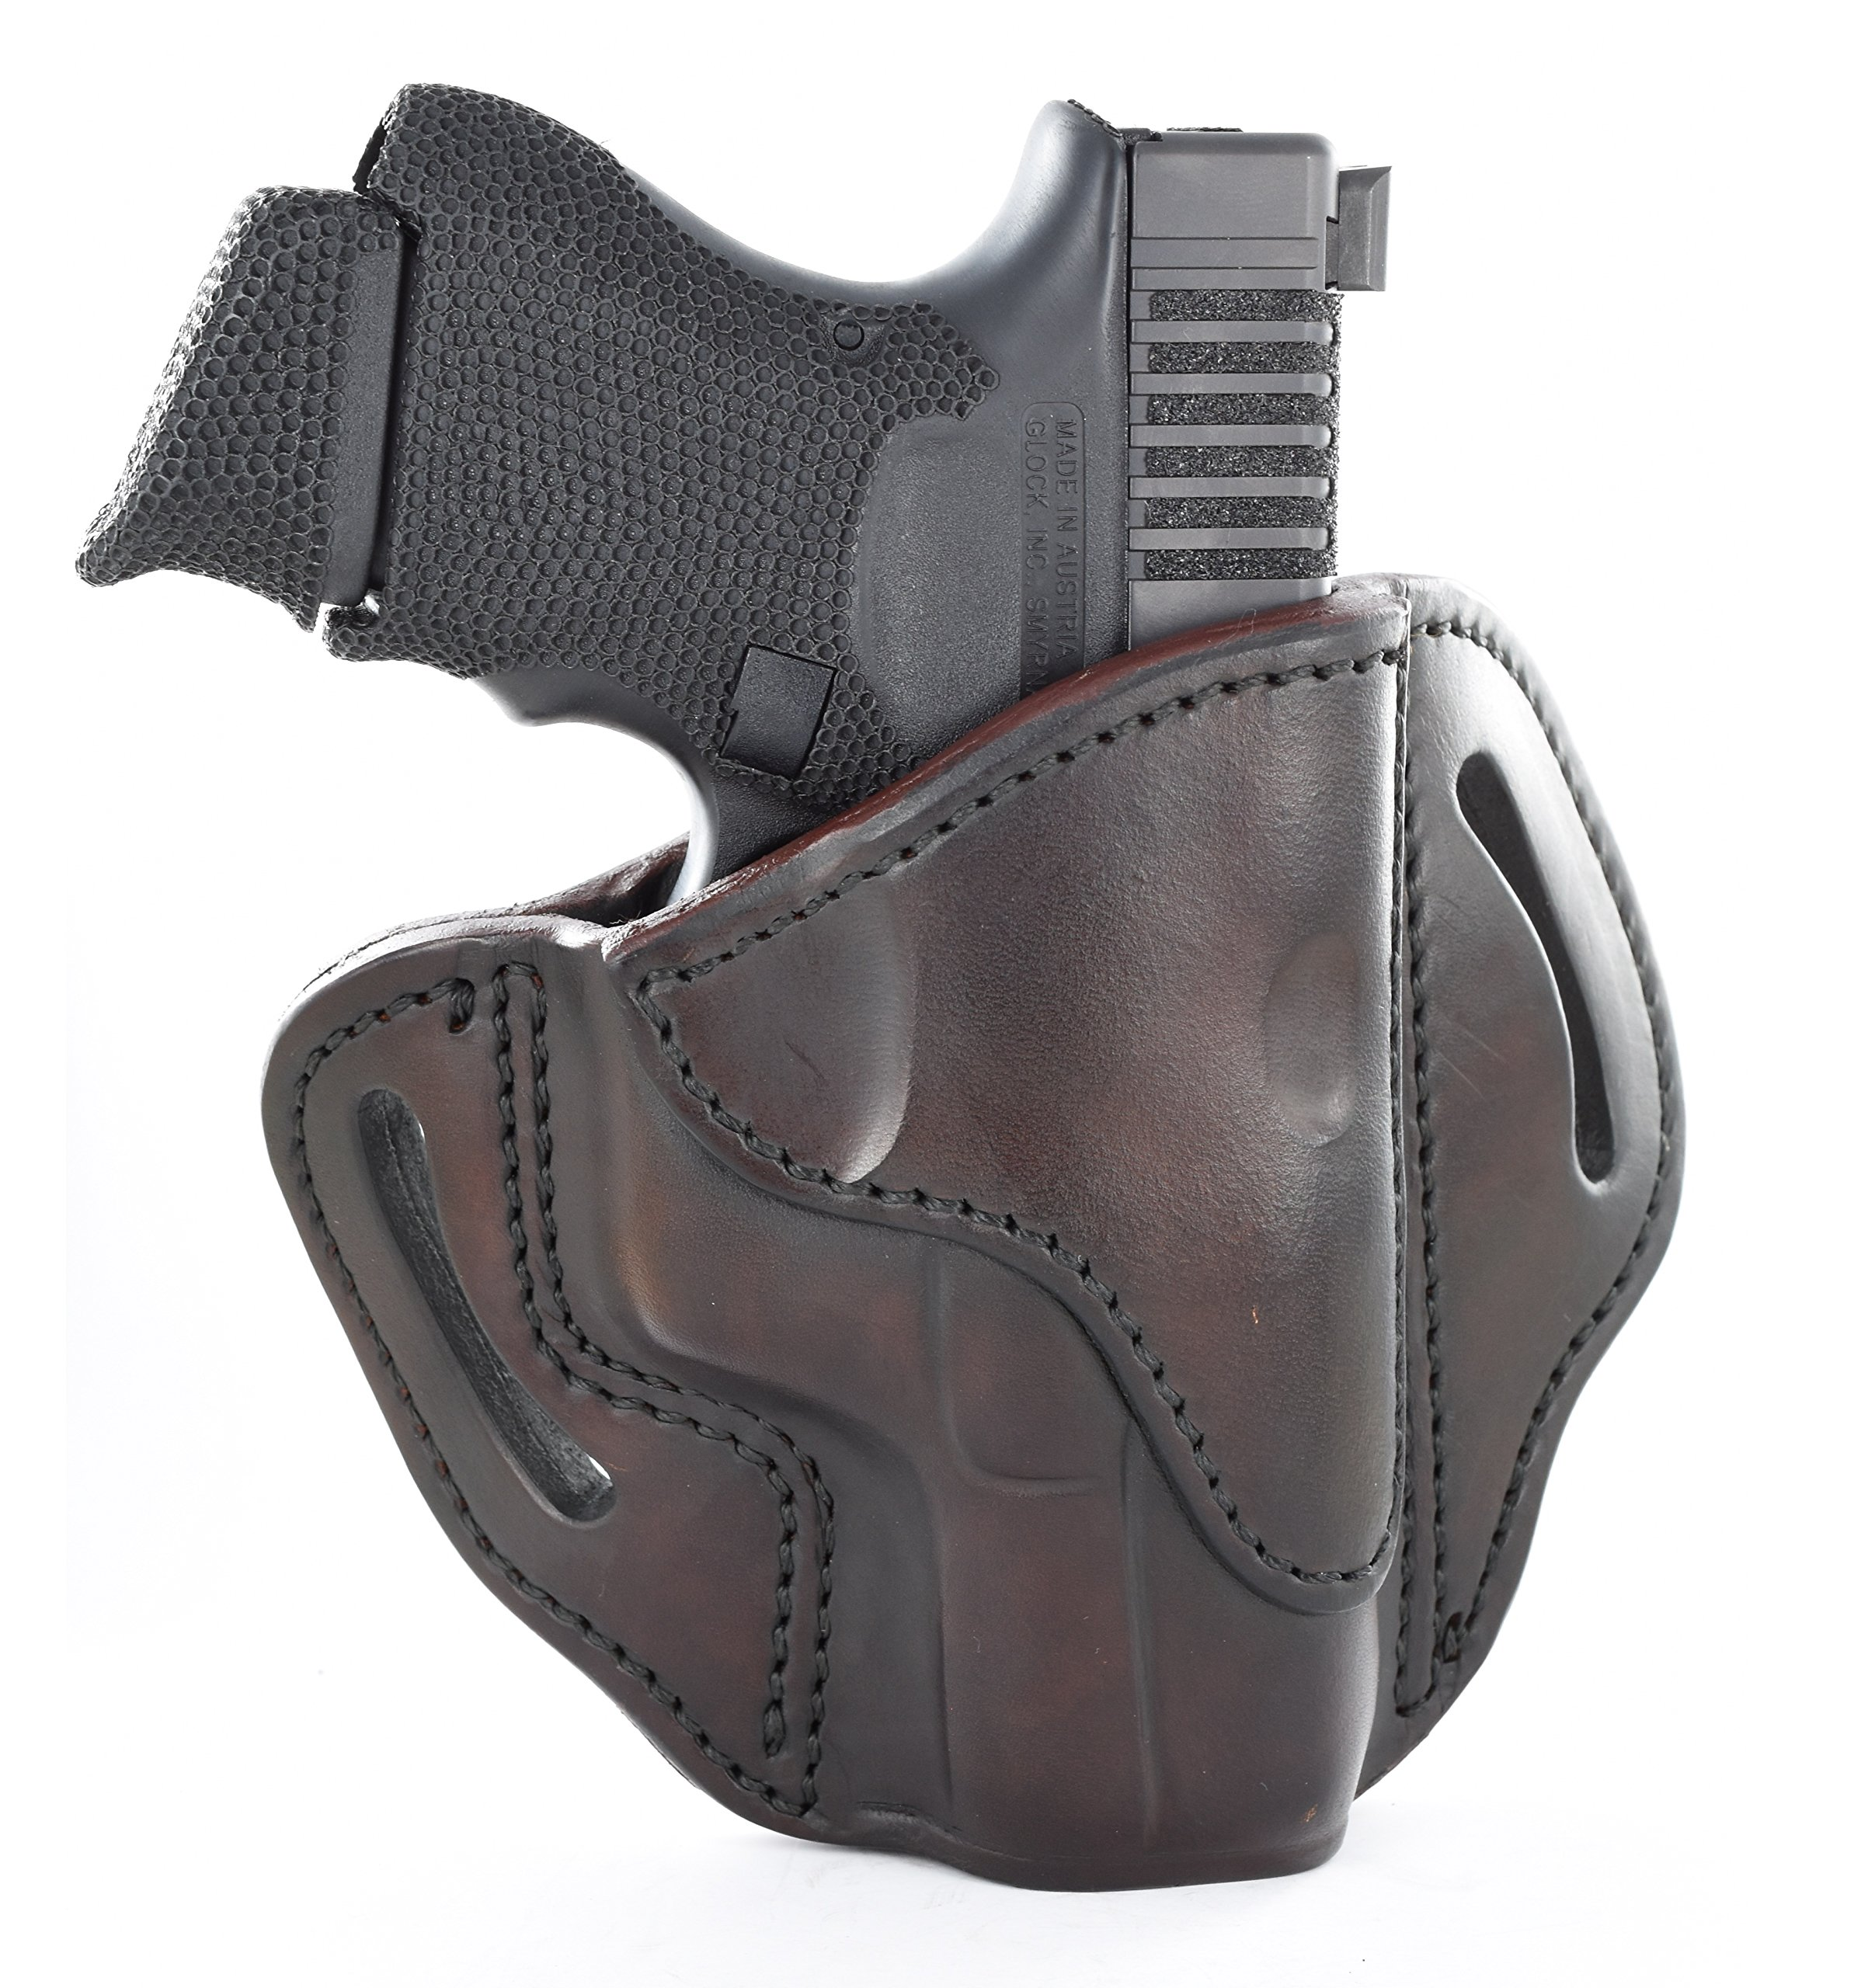 1791 GUNLEATHER Glock 19 Holster - Right Hand OWB G19 Leather Holster for Belts - Fits Glock 19, 23, 26, 27, H&K VP40 and Springfield XDS